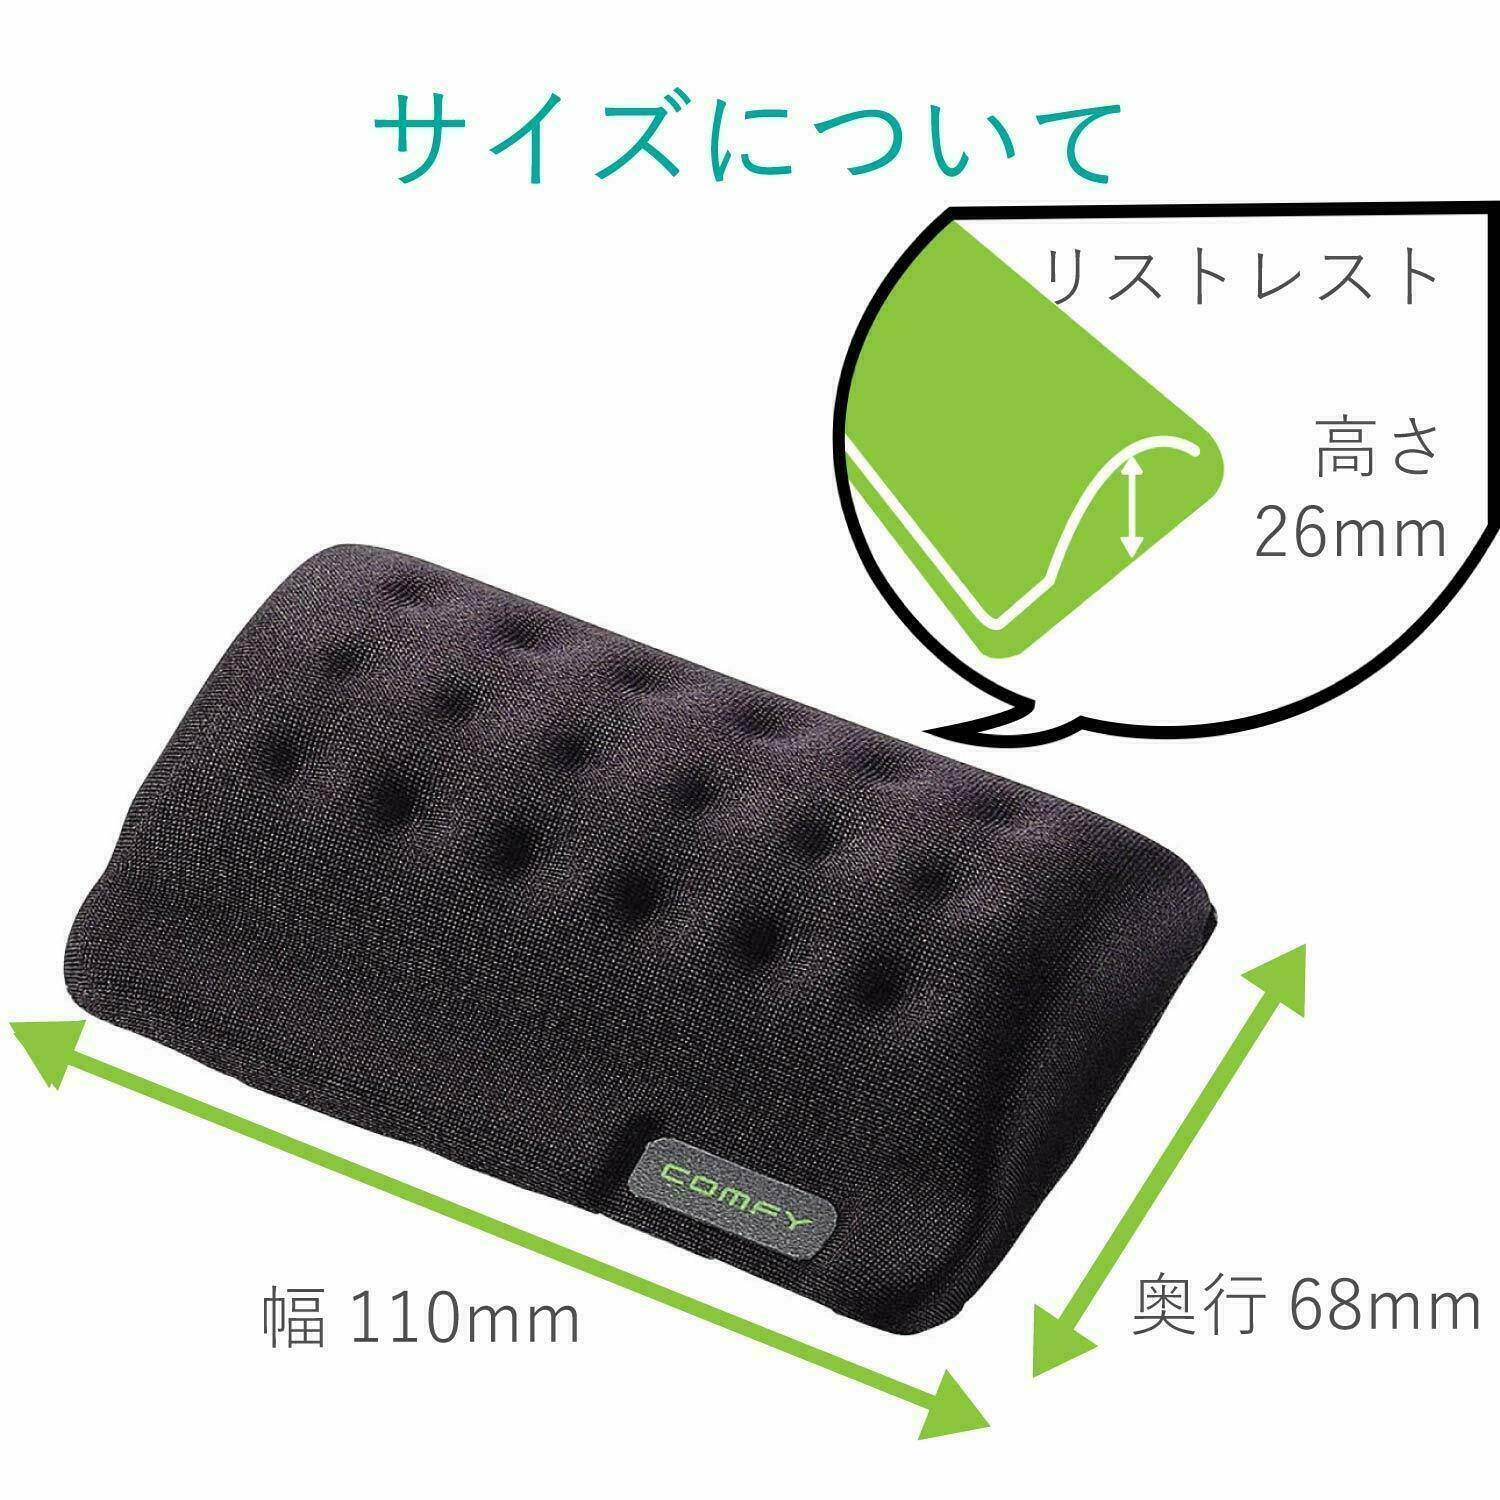 Mouse Mice Wrist Rest Pad, Ergonomic Wrist Pad Anti-Skid Wrist Support Pad Rest